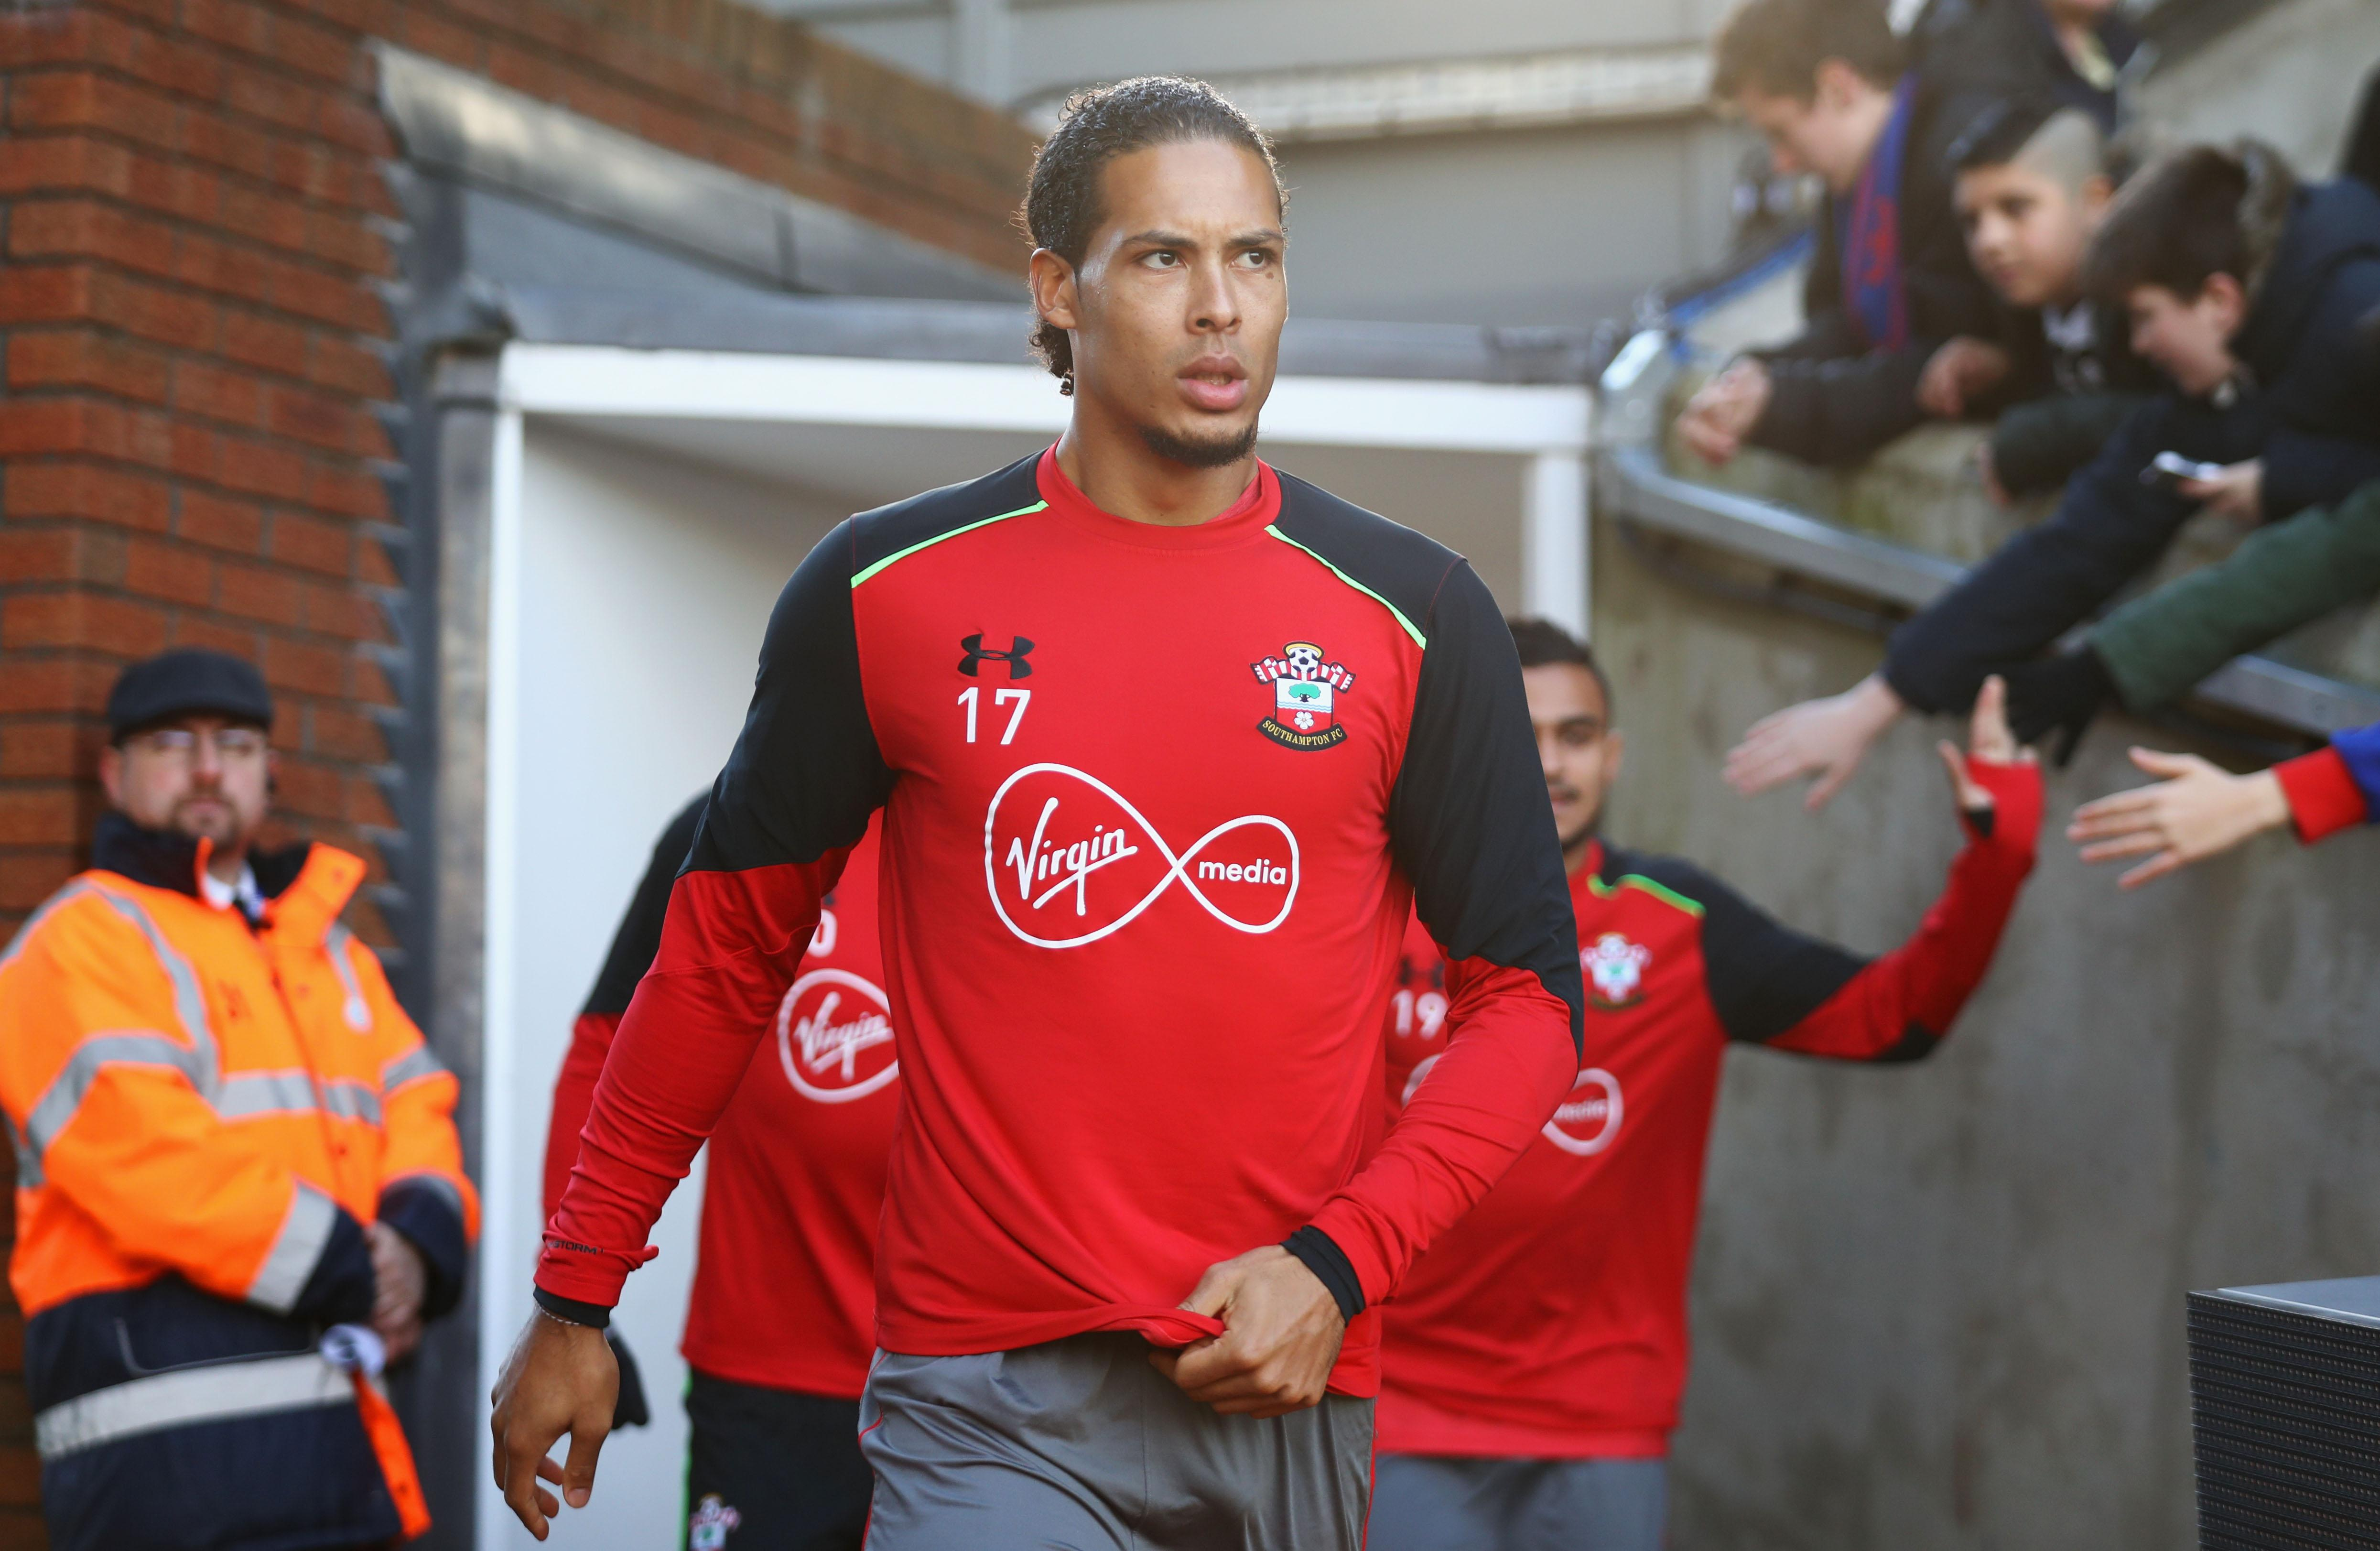 Southamtpon reported Liverpool's approach for Virgil Van Dijk to the Premier League